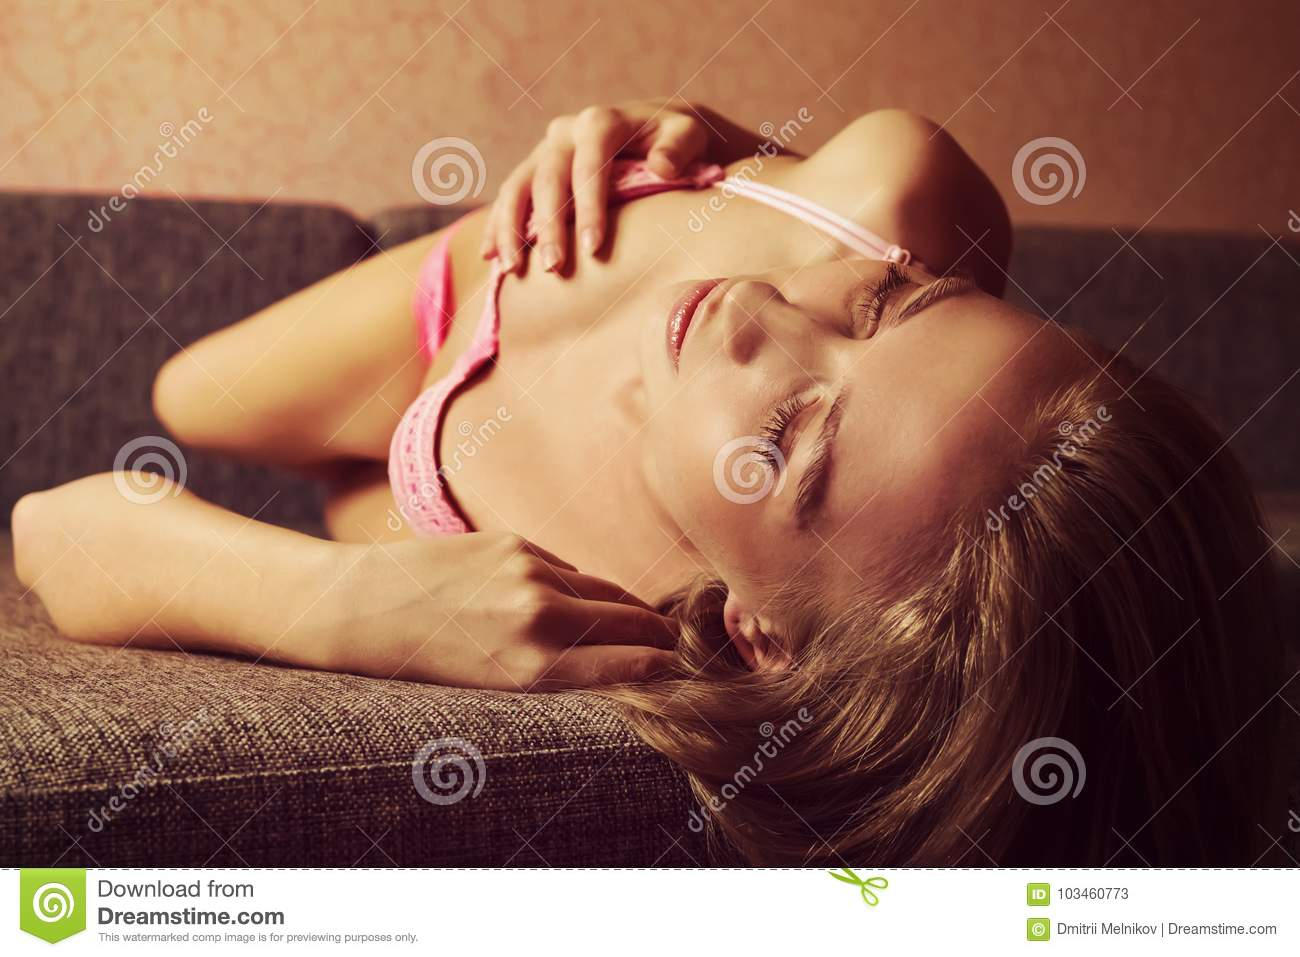 d79d66567c Photo of woman lying in bed and touching breast in bra. Cute Blonde lies on  the couch and touching her Boobs in pink bra.